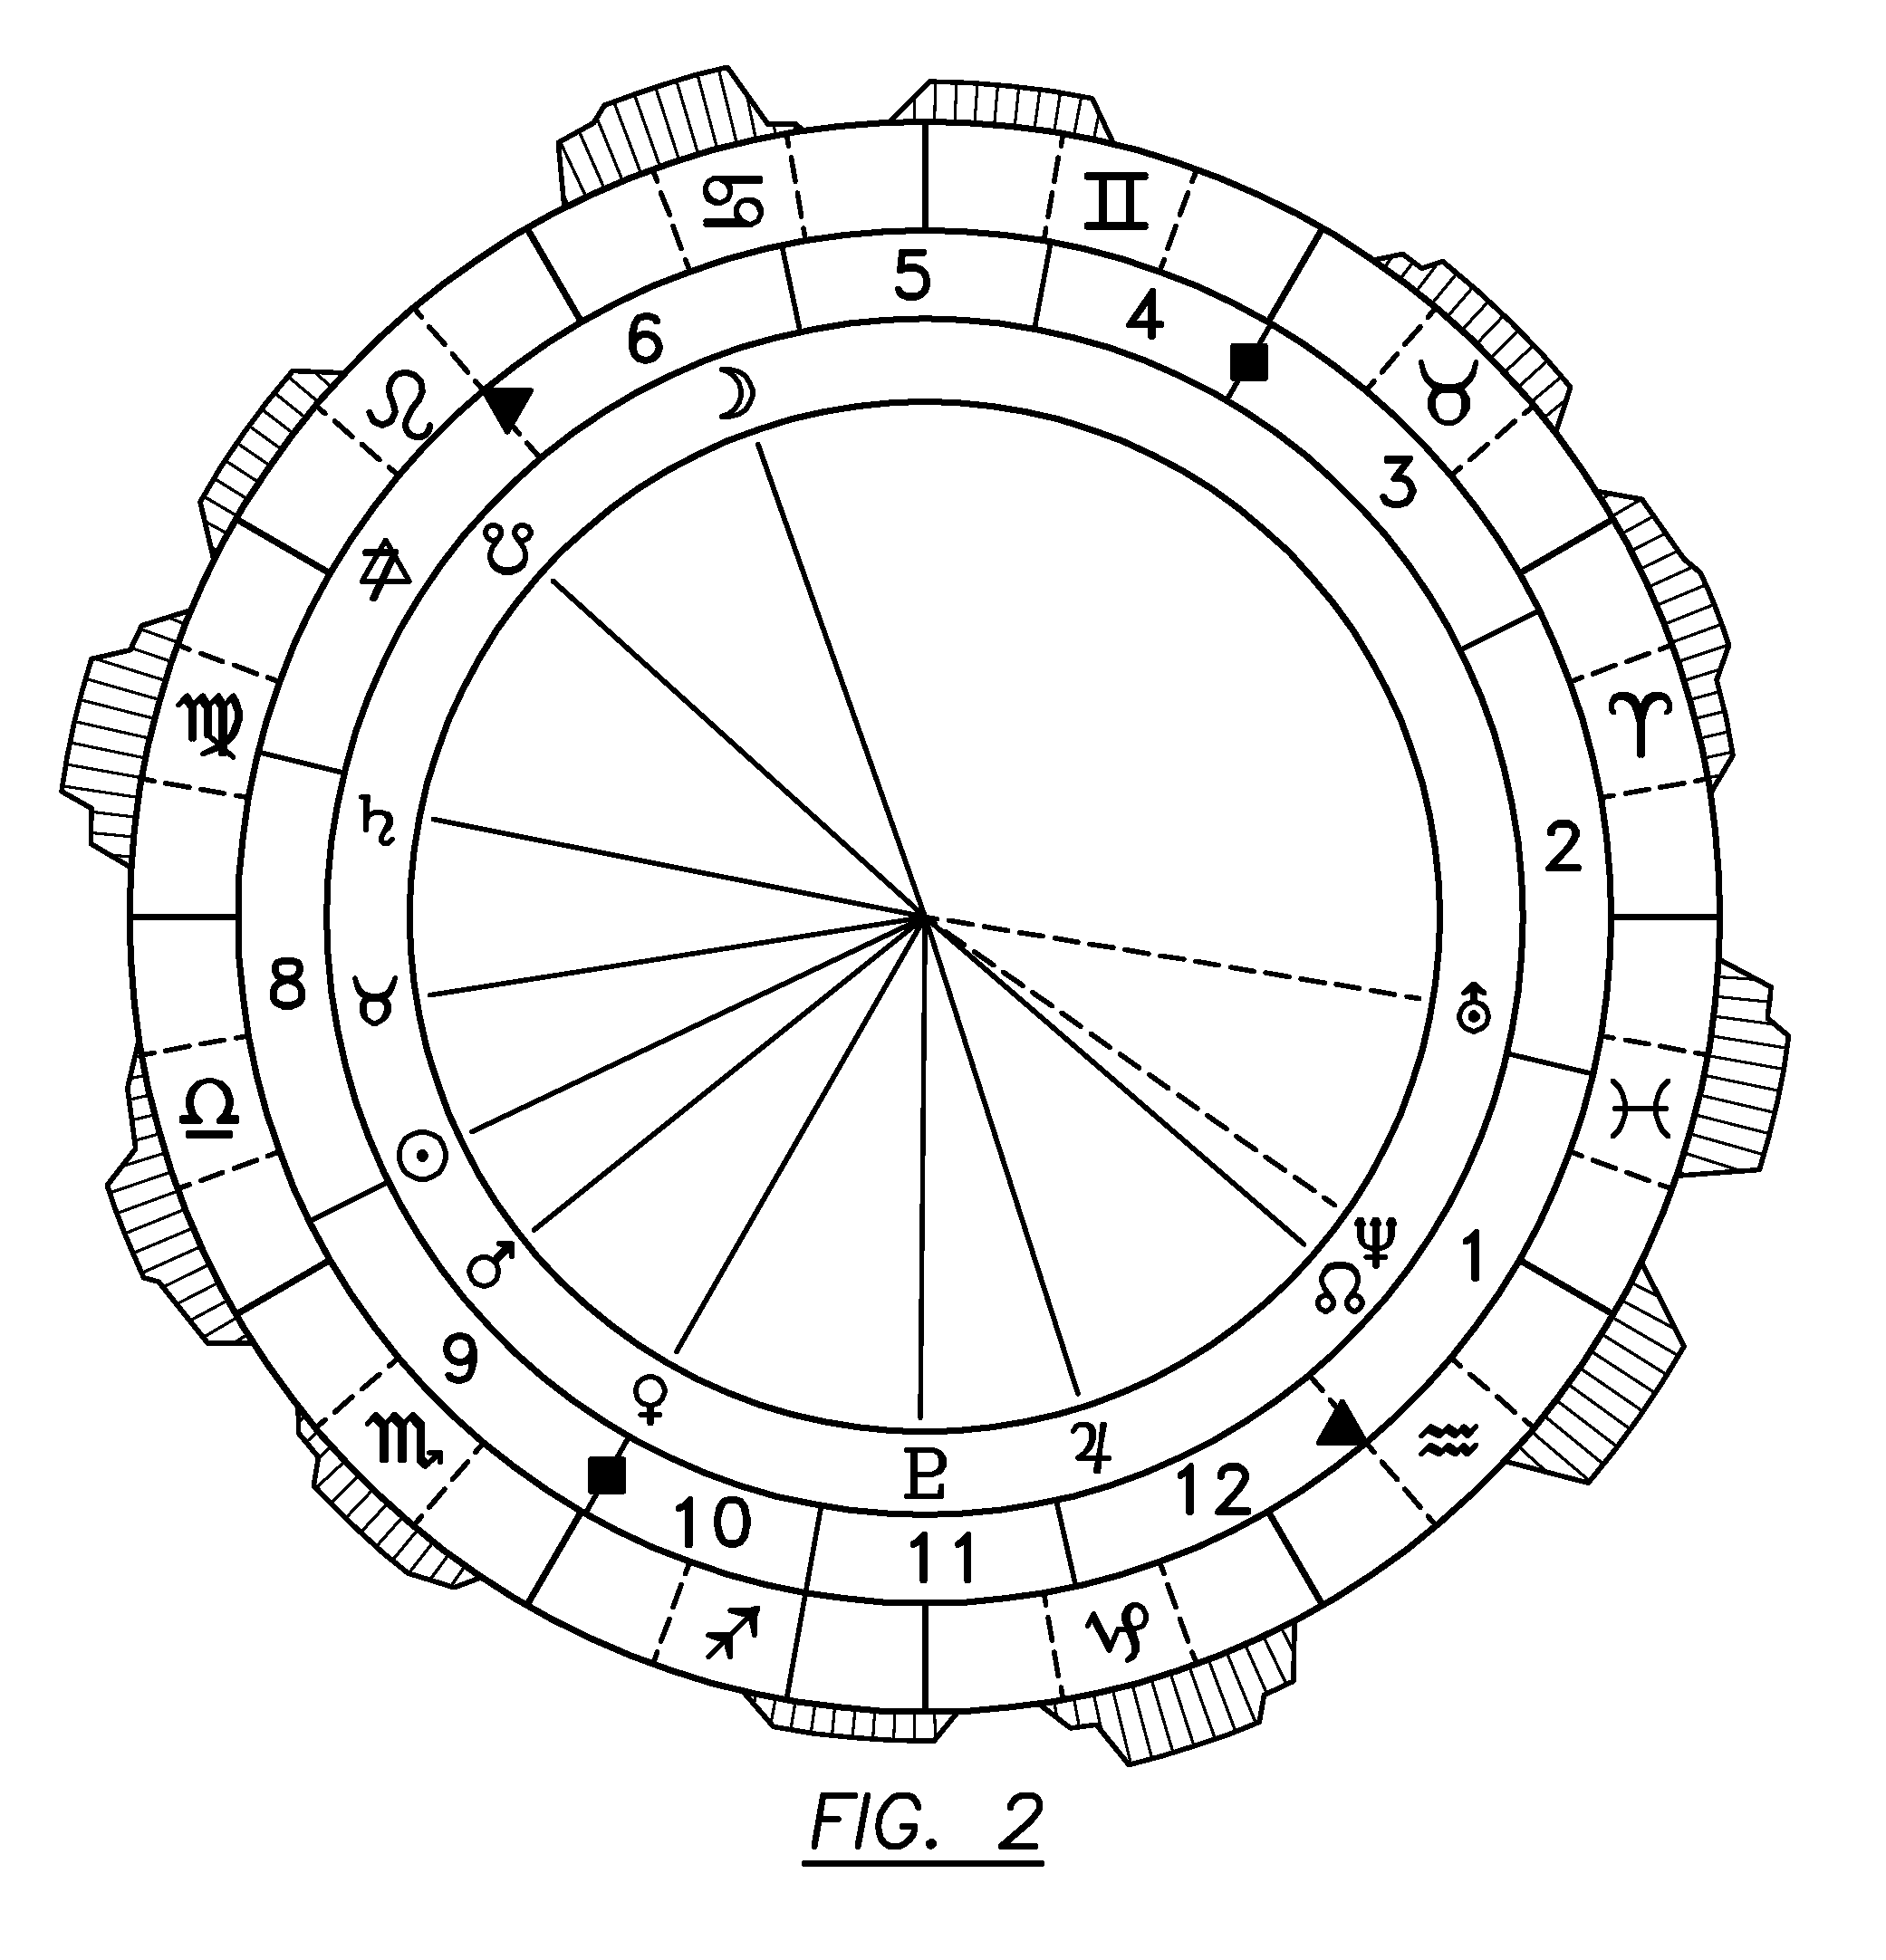 patent us20100145619 - computation of energy values for zodiac degrees